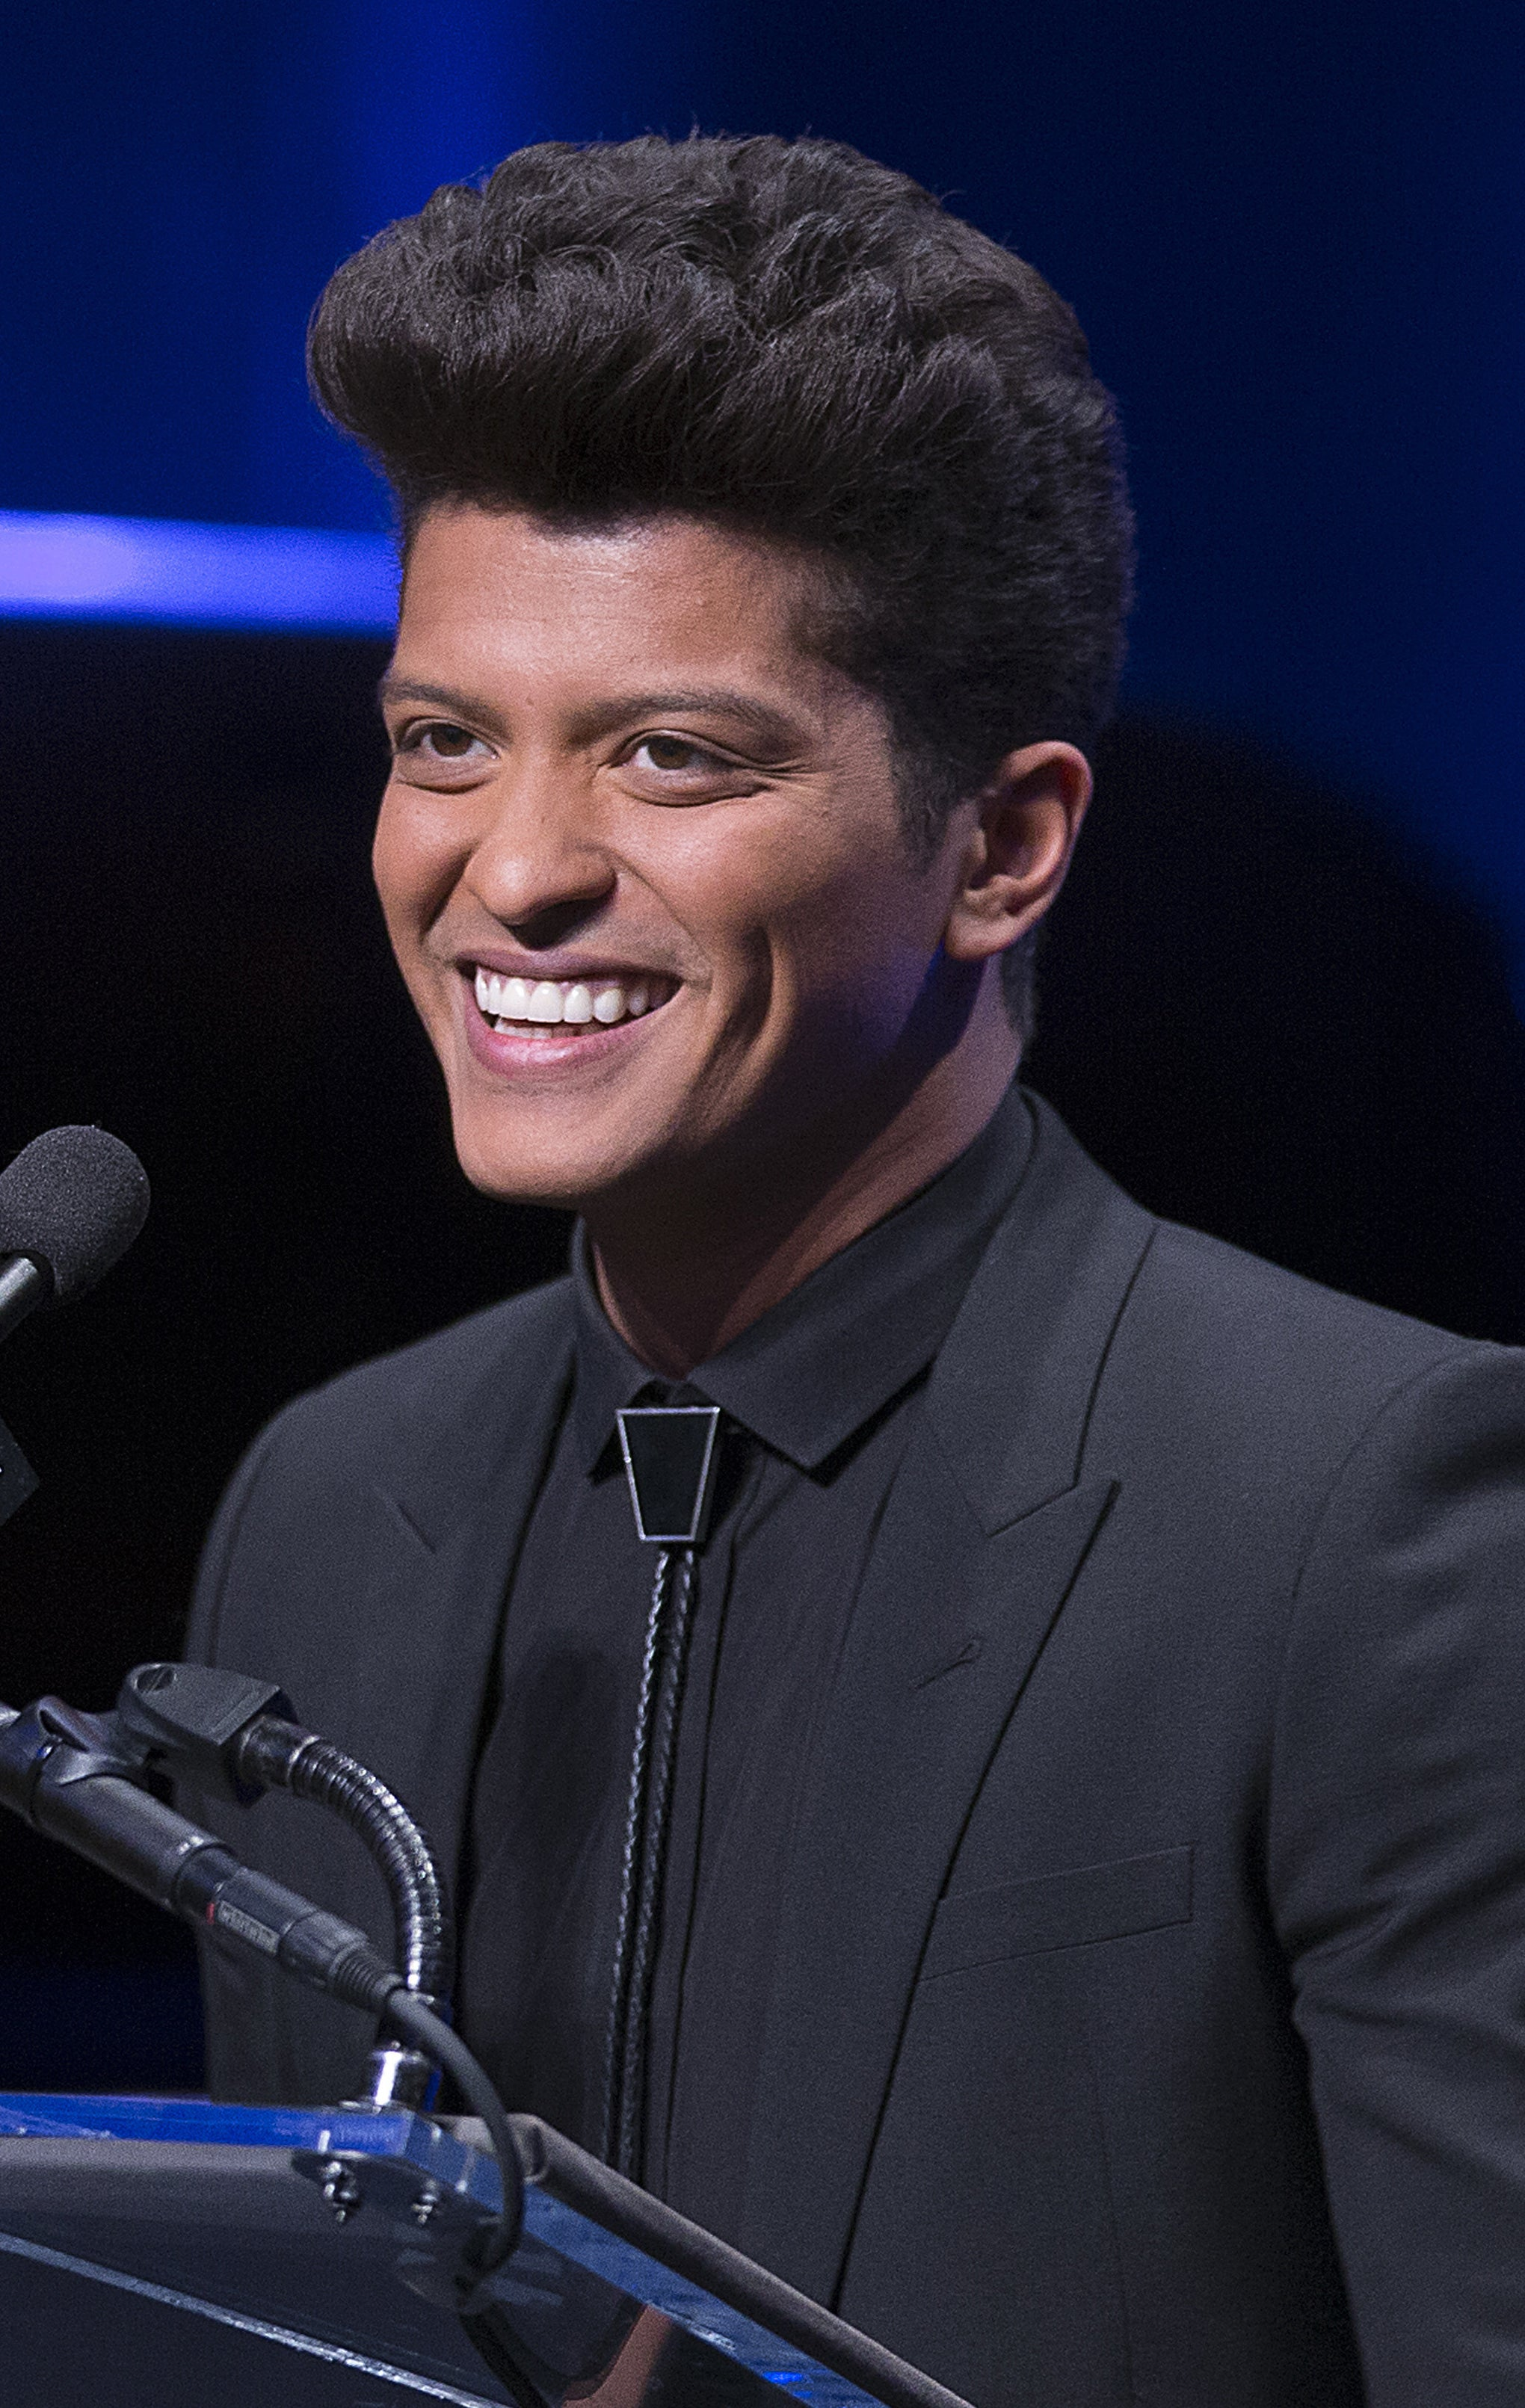 Bruno Mars giving a speech, wearing an all-black suit